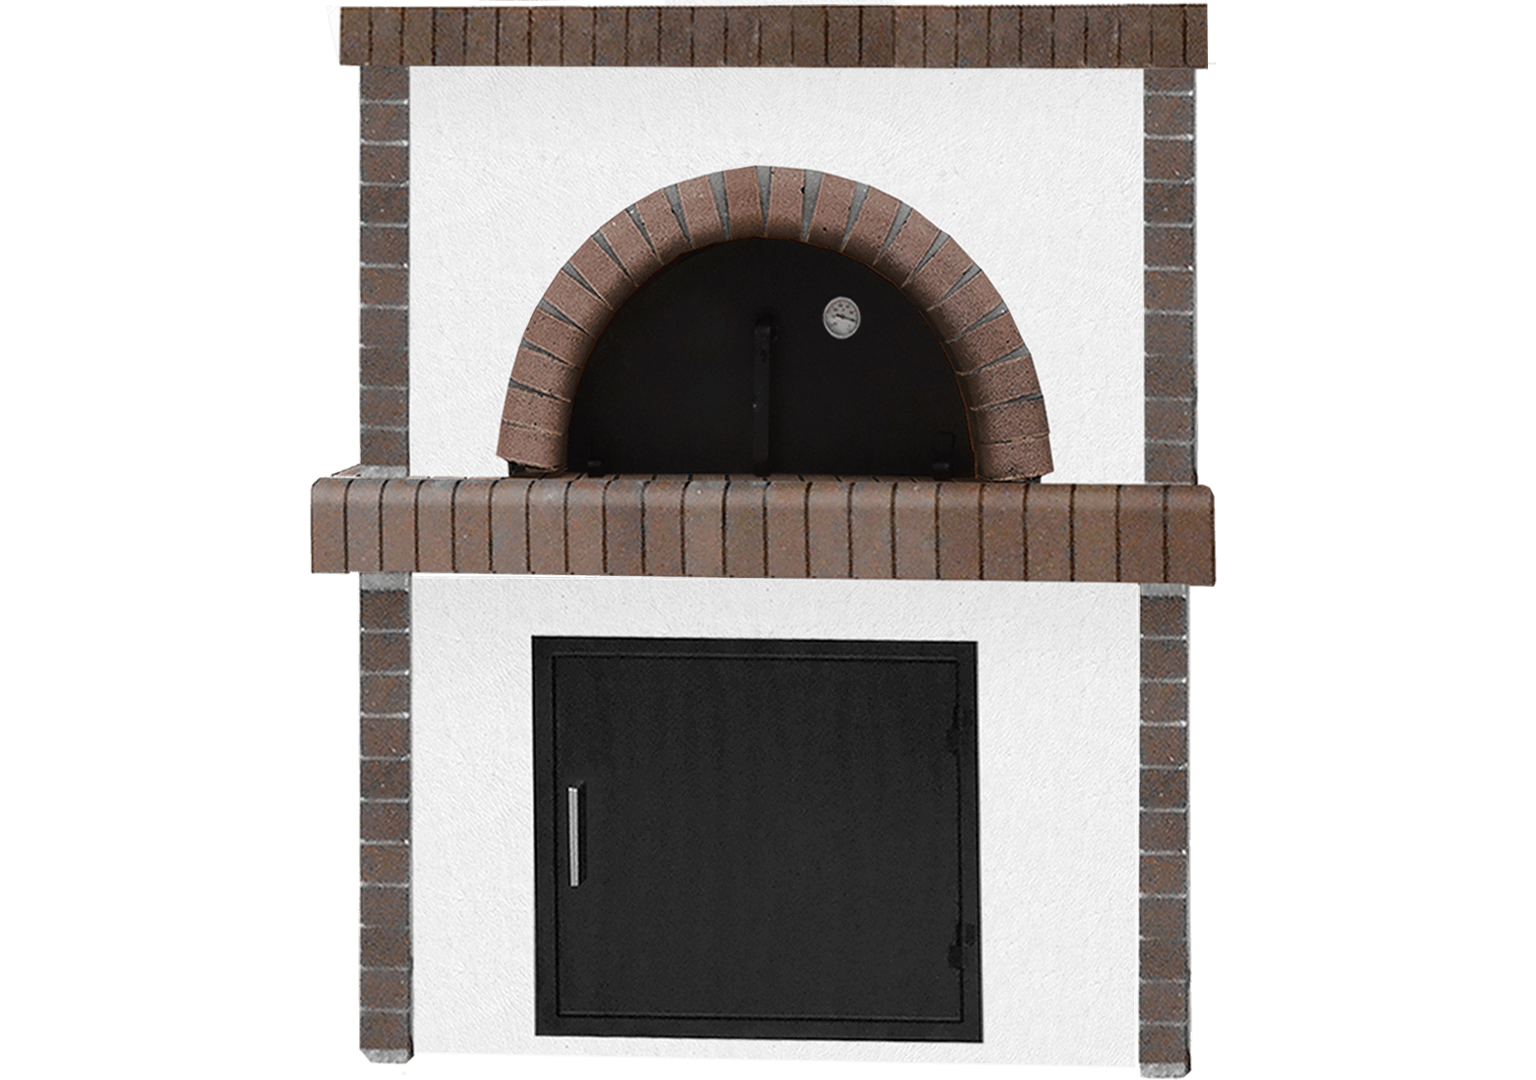 Traditional wood-fired oven